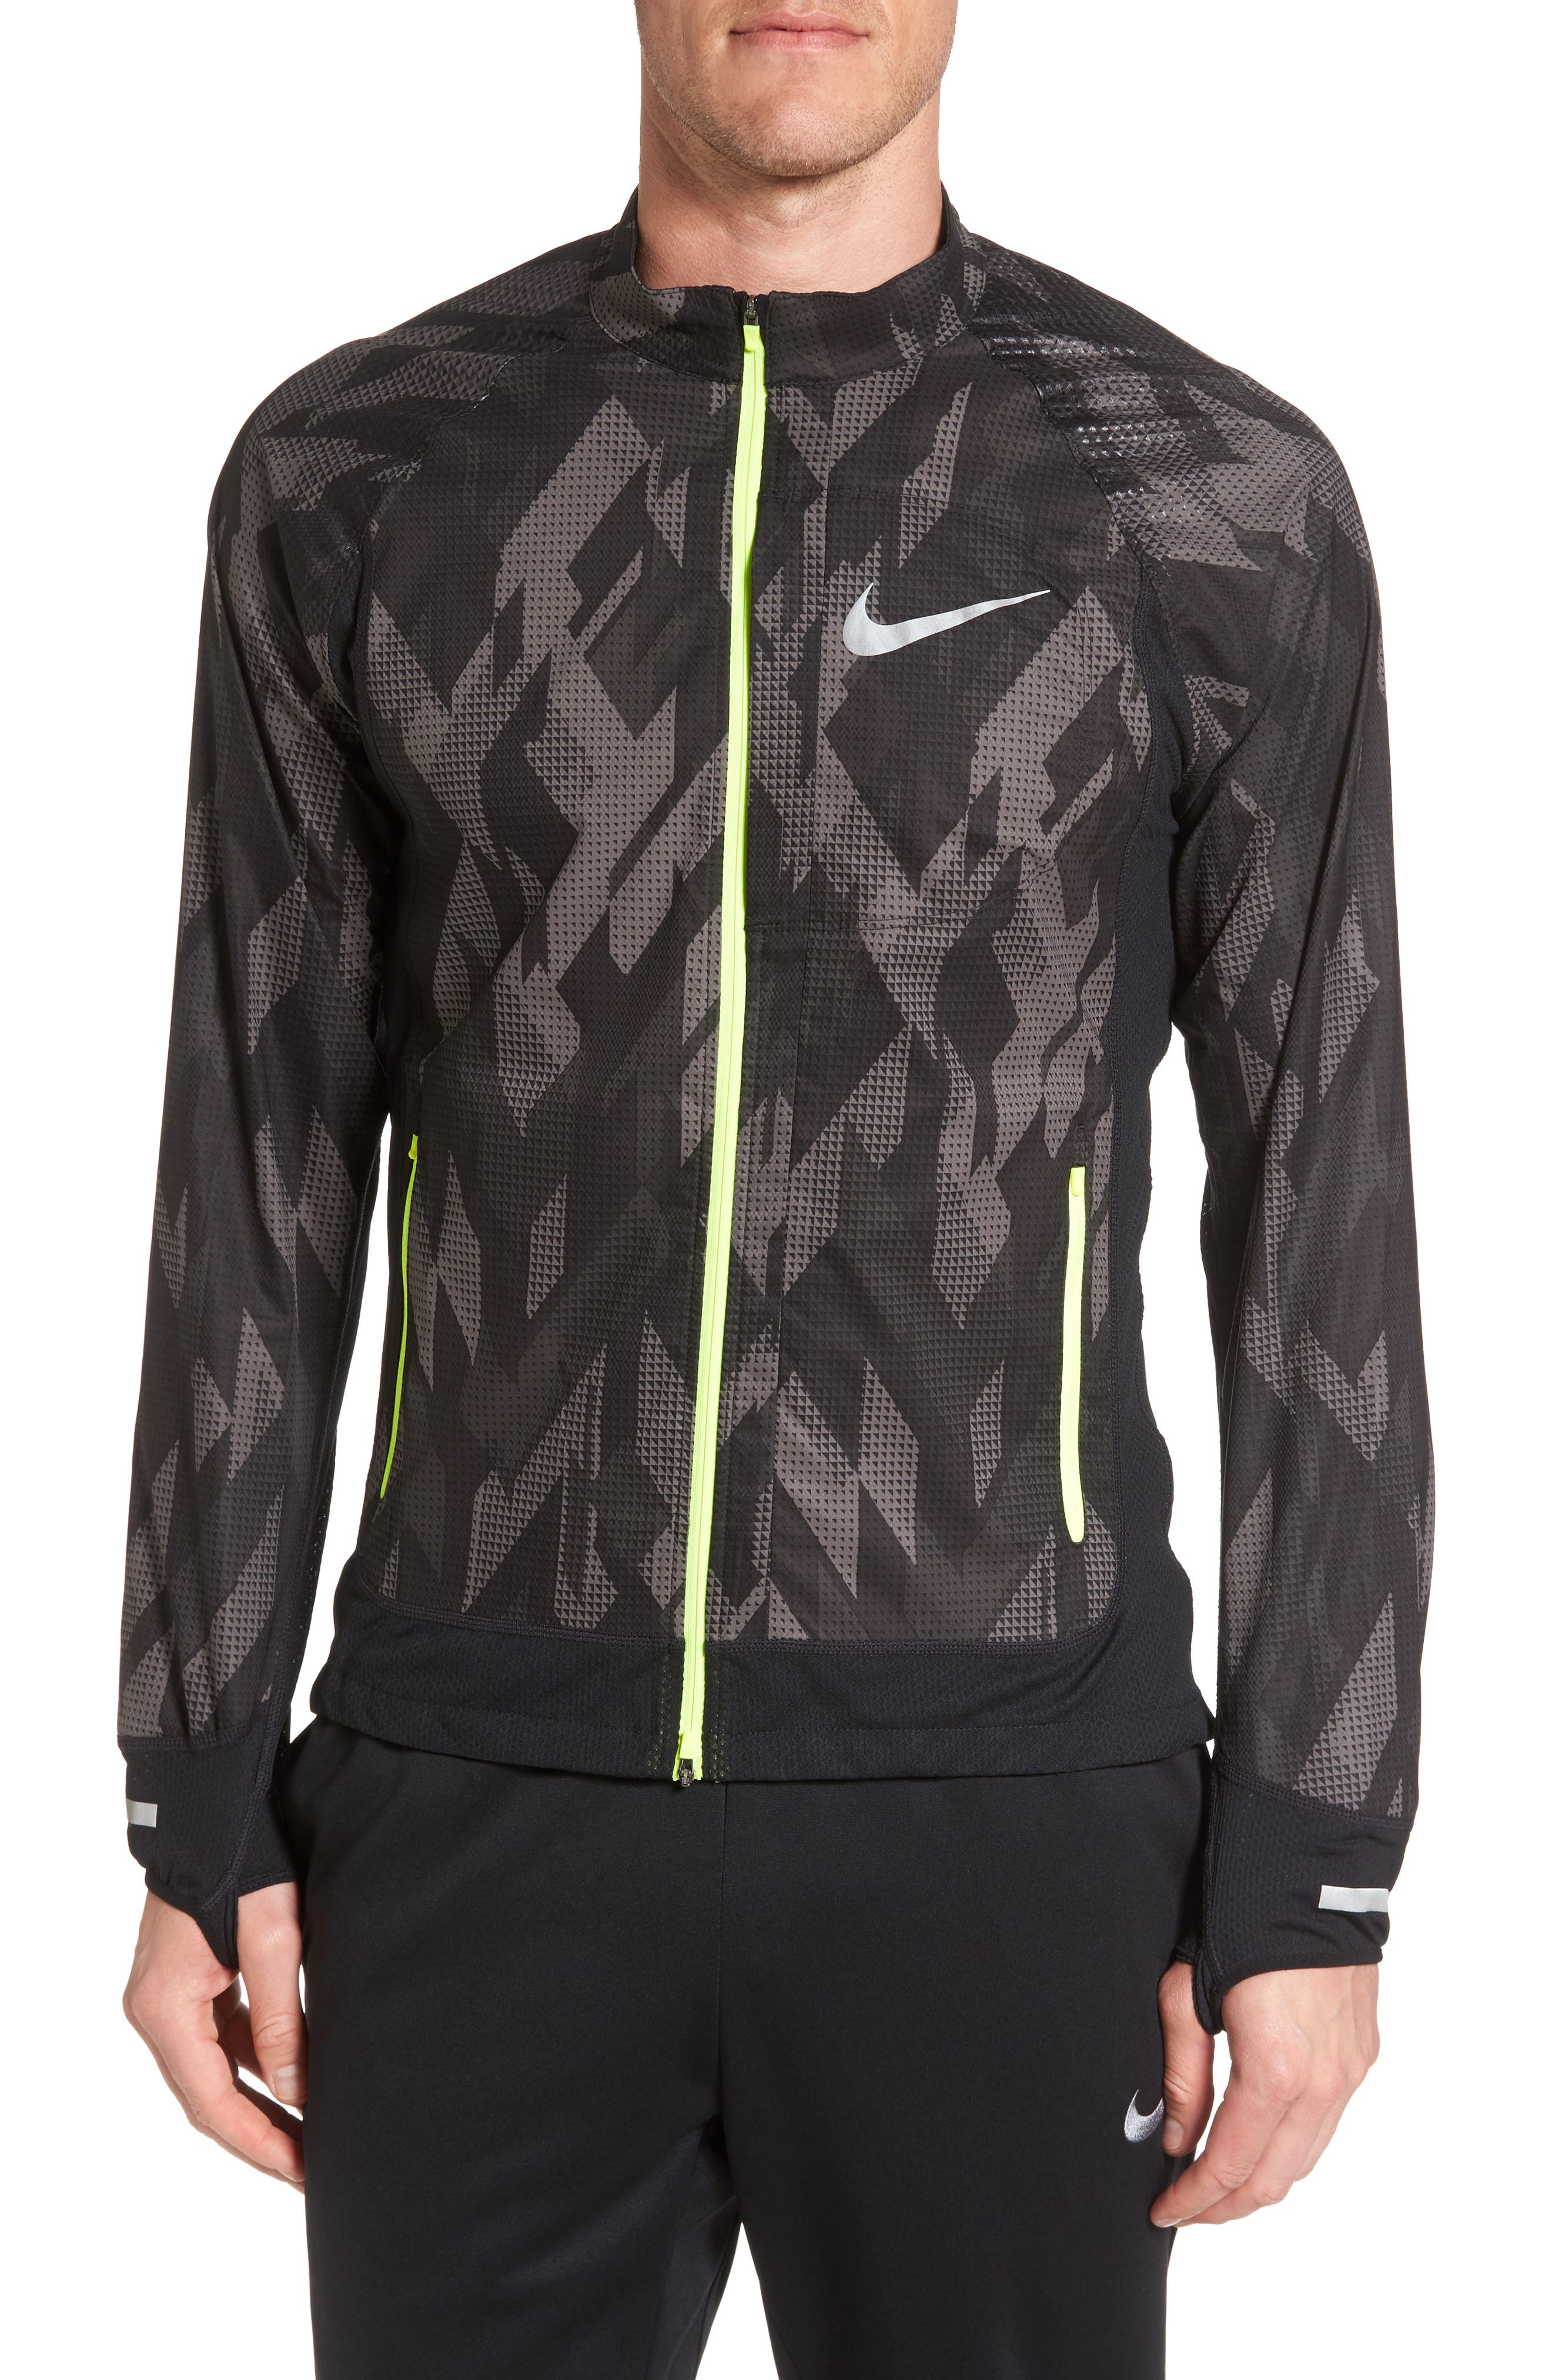 Nike Flex Running Jacket